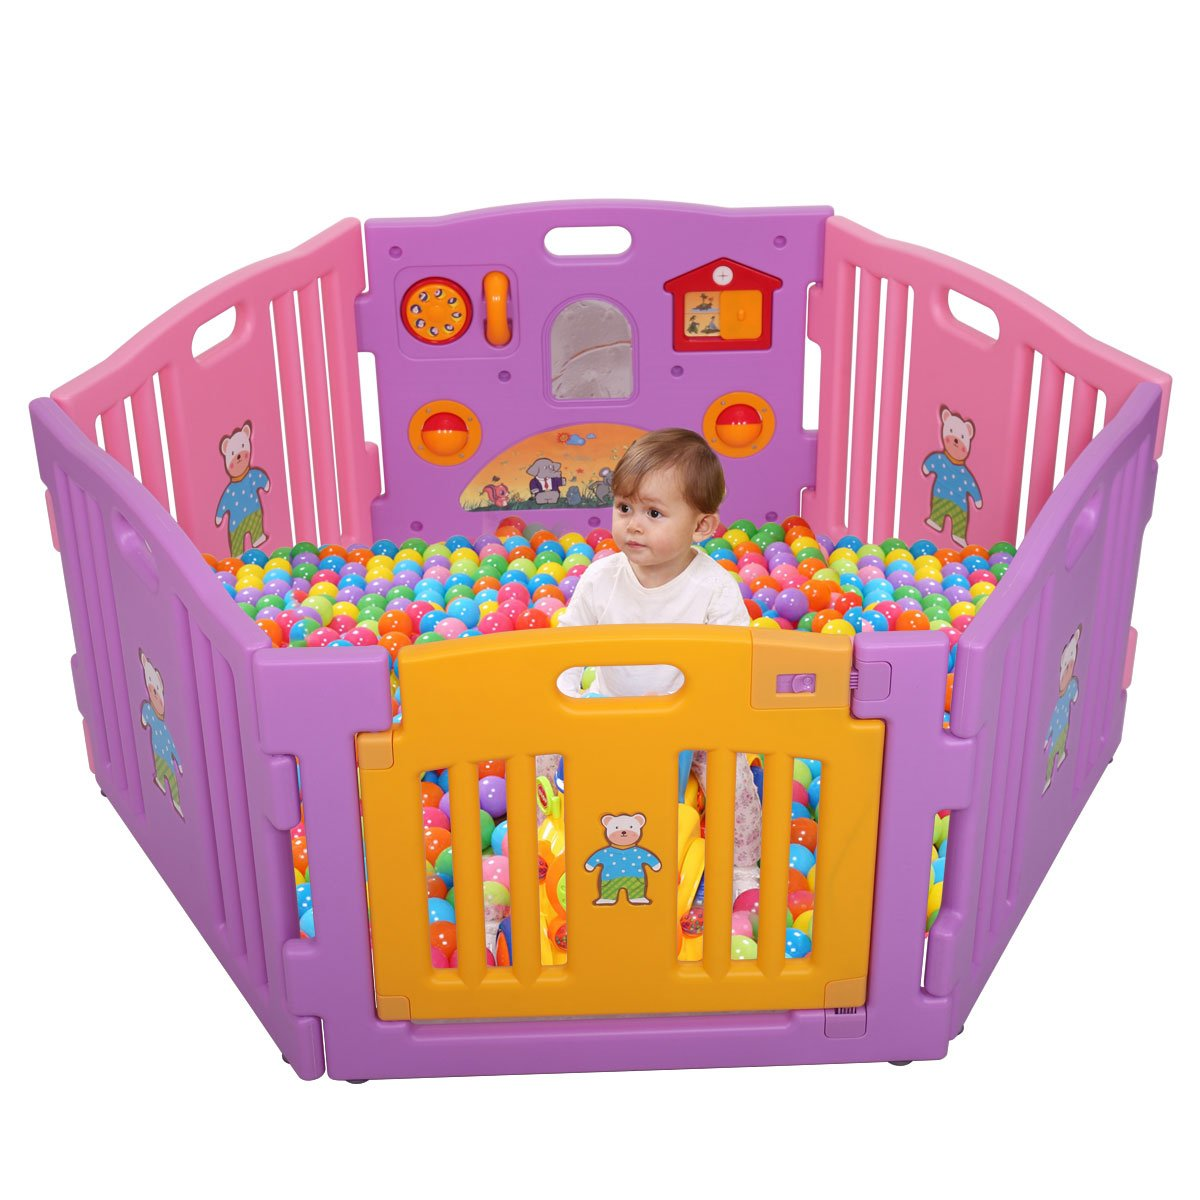 LAZYMOON Pink Baby Playpen Kids 6 Panel Safety Play Center Yard Home Indoor Outdoor Game